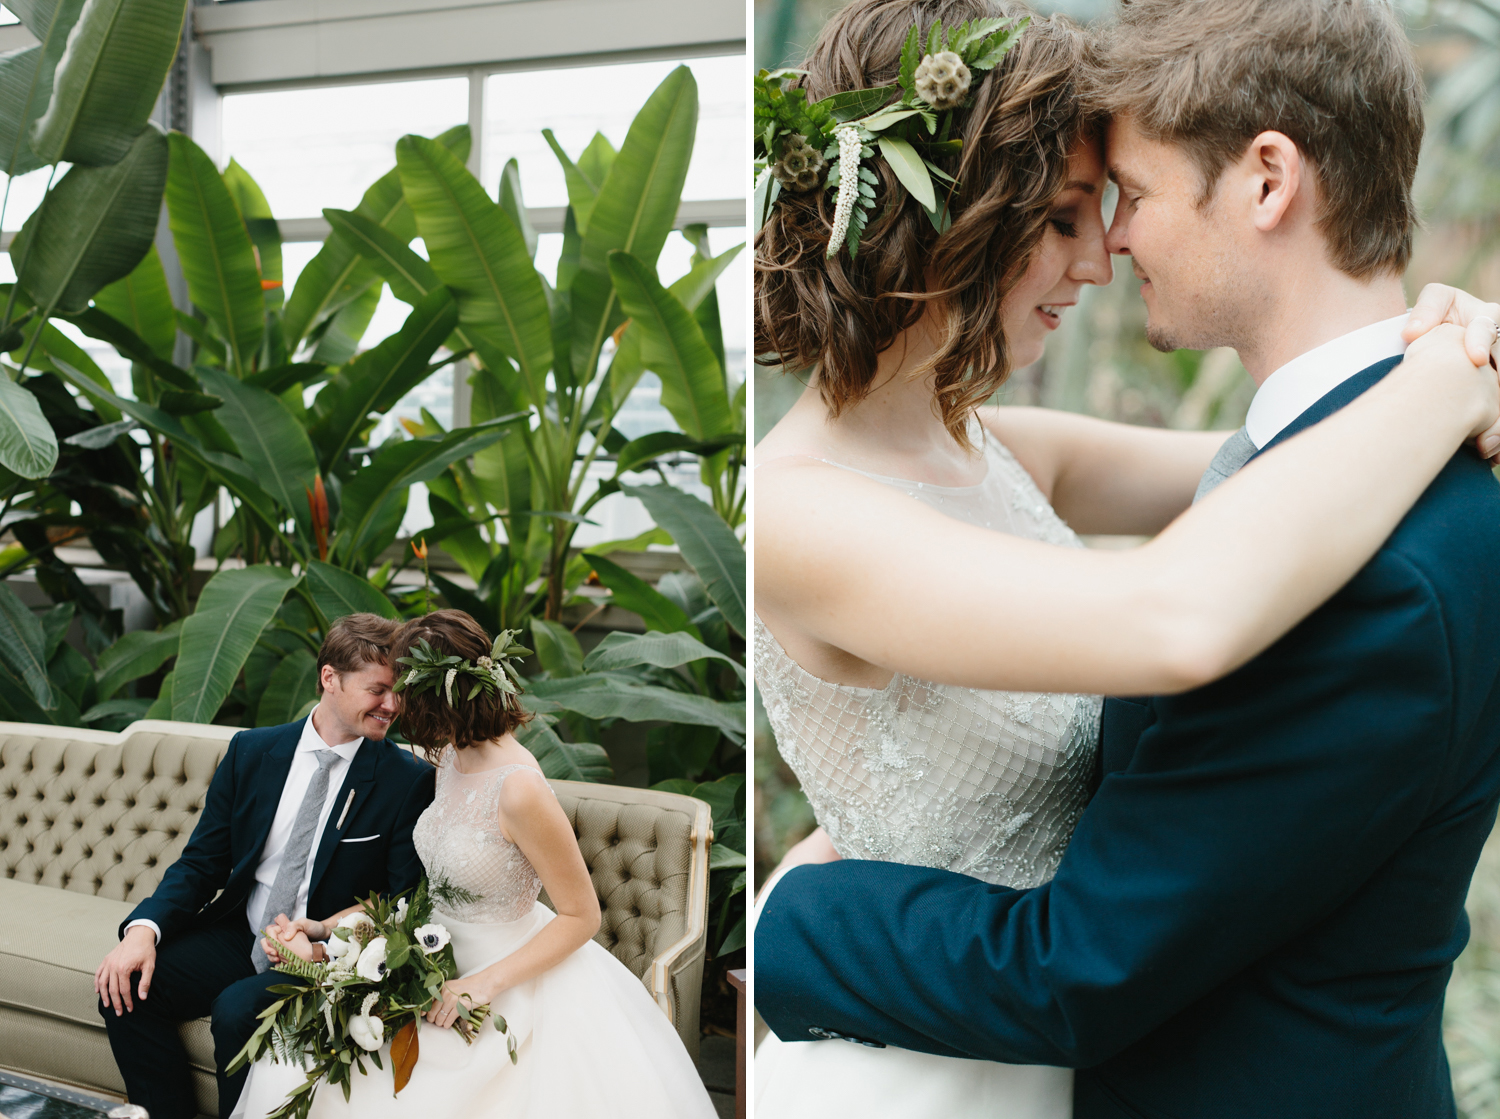 Chicago Garfield Park Conservatory Wedding by Northern Michigan Photographer Mae Stier-015.jpg